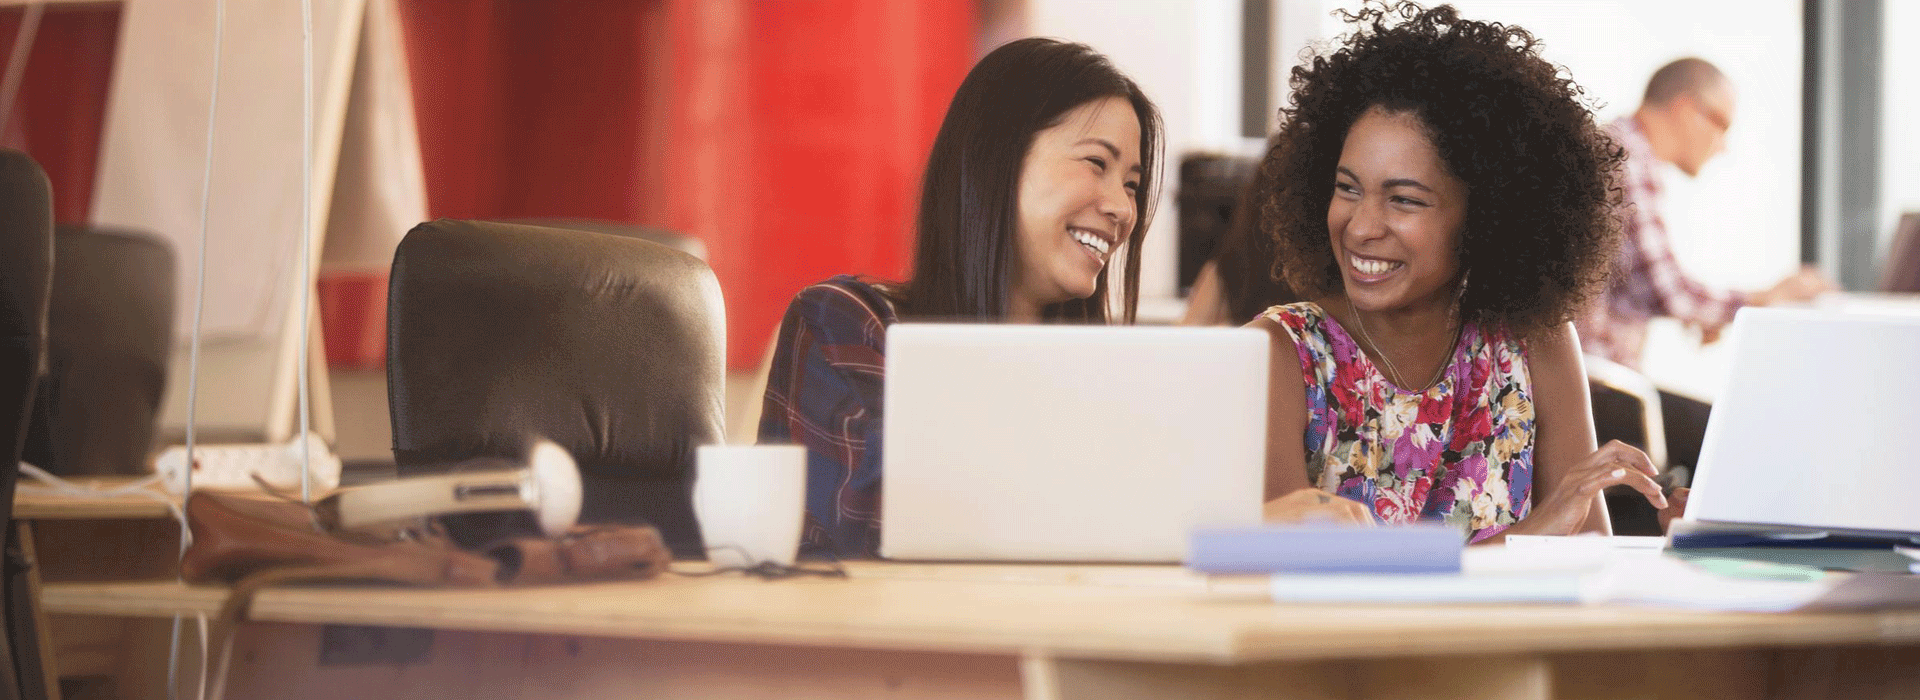 Two woman working on their laptops in an office environment laughing with each other